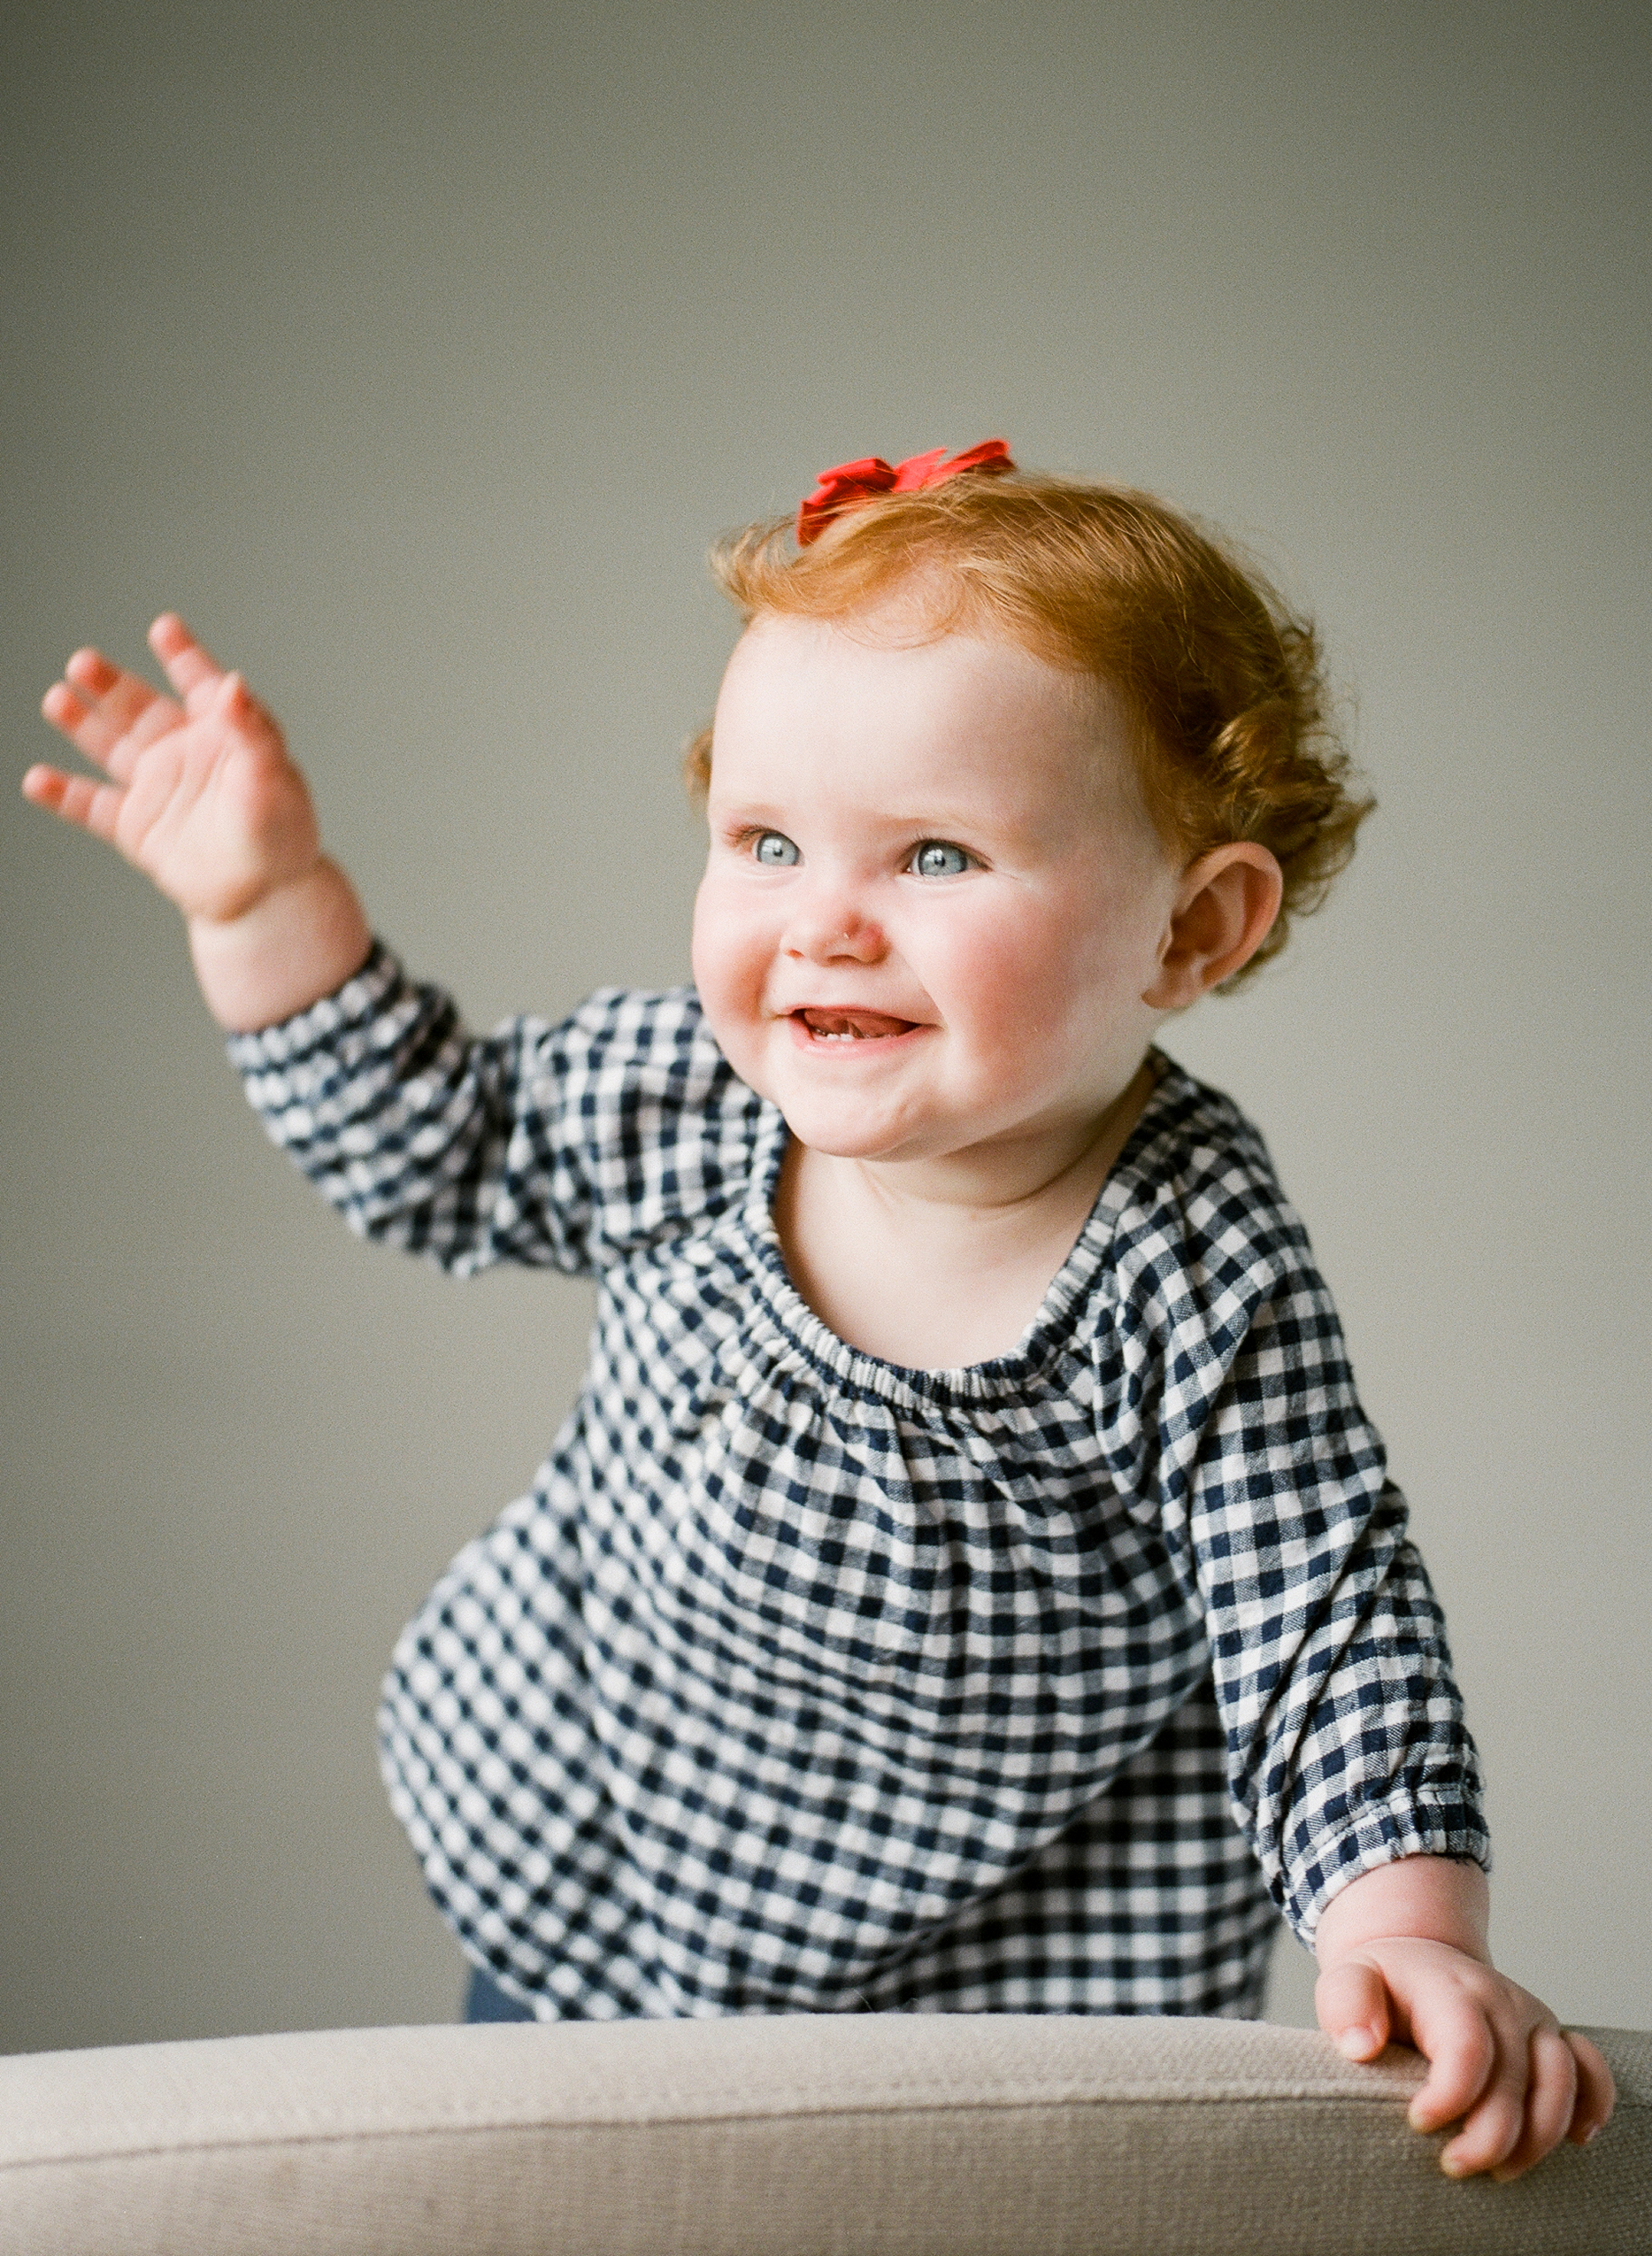 Outfit ideas for red head babies